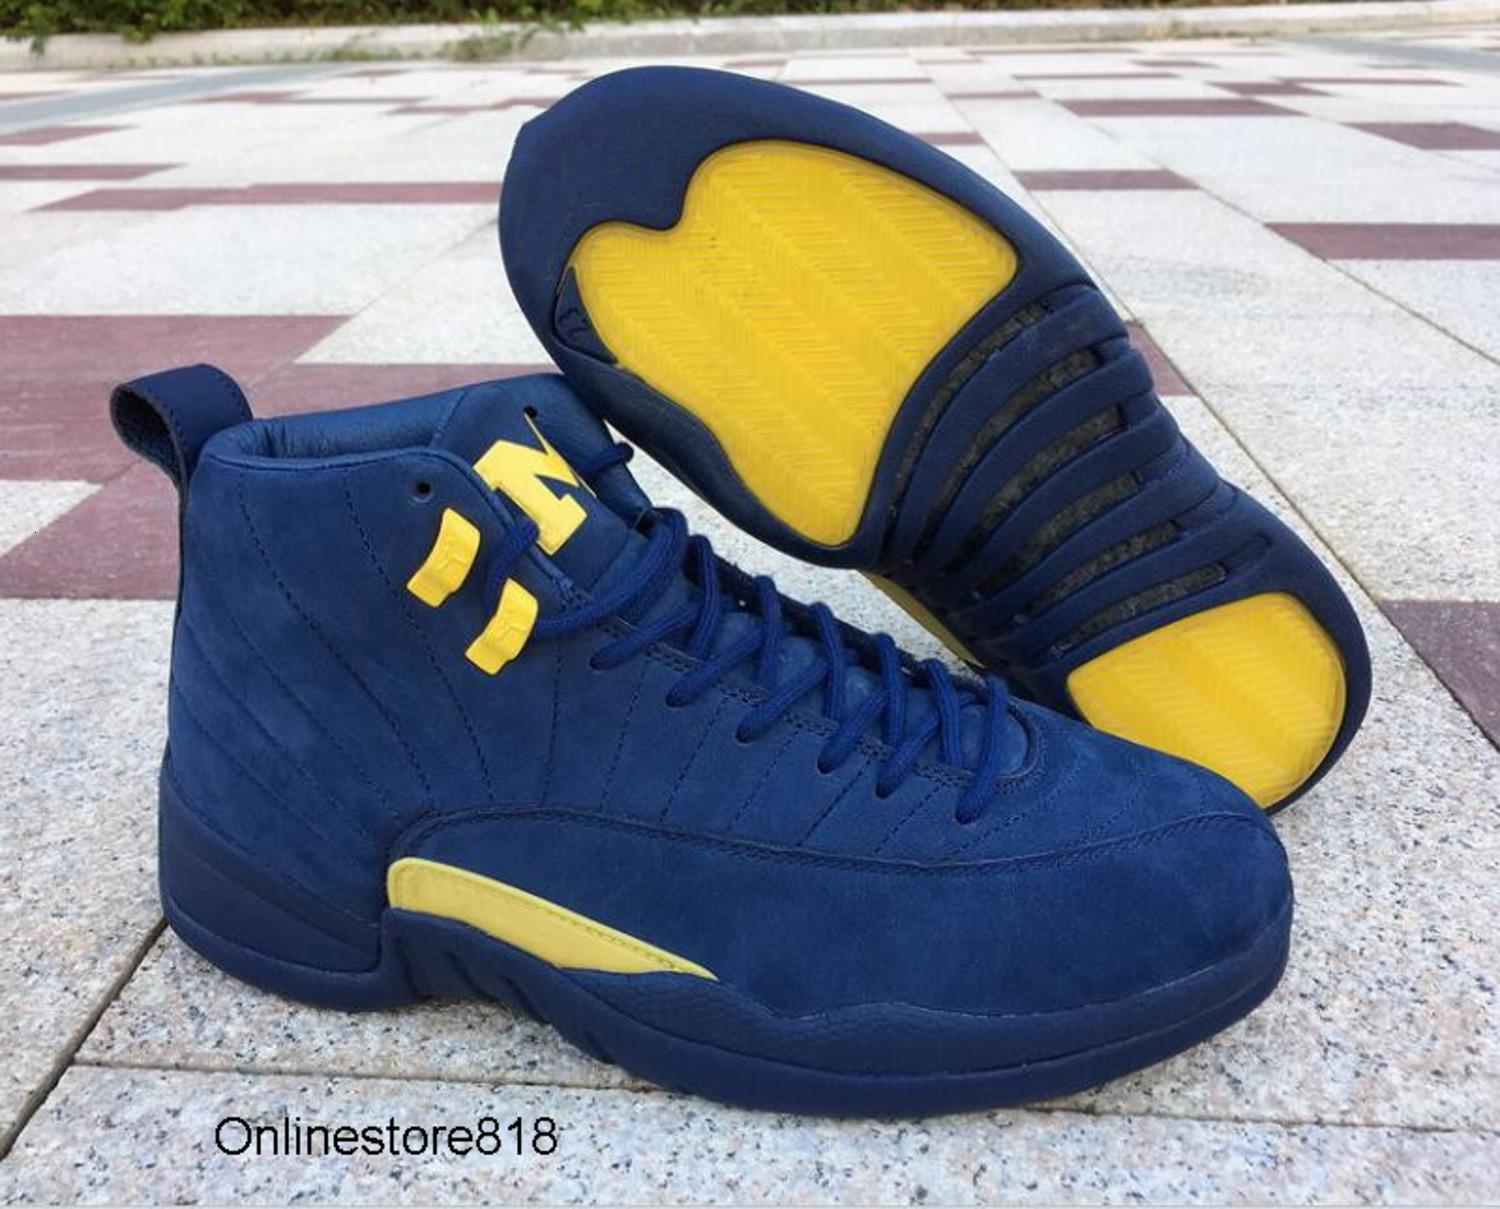 Best Quality 12 RTR Michigan NRG Designer Basketball Shoes New Comfort XII College Navy Amarillo Fashion Sports Sneakers With Original Box